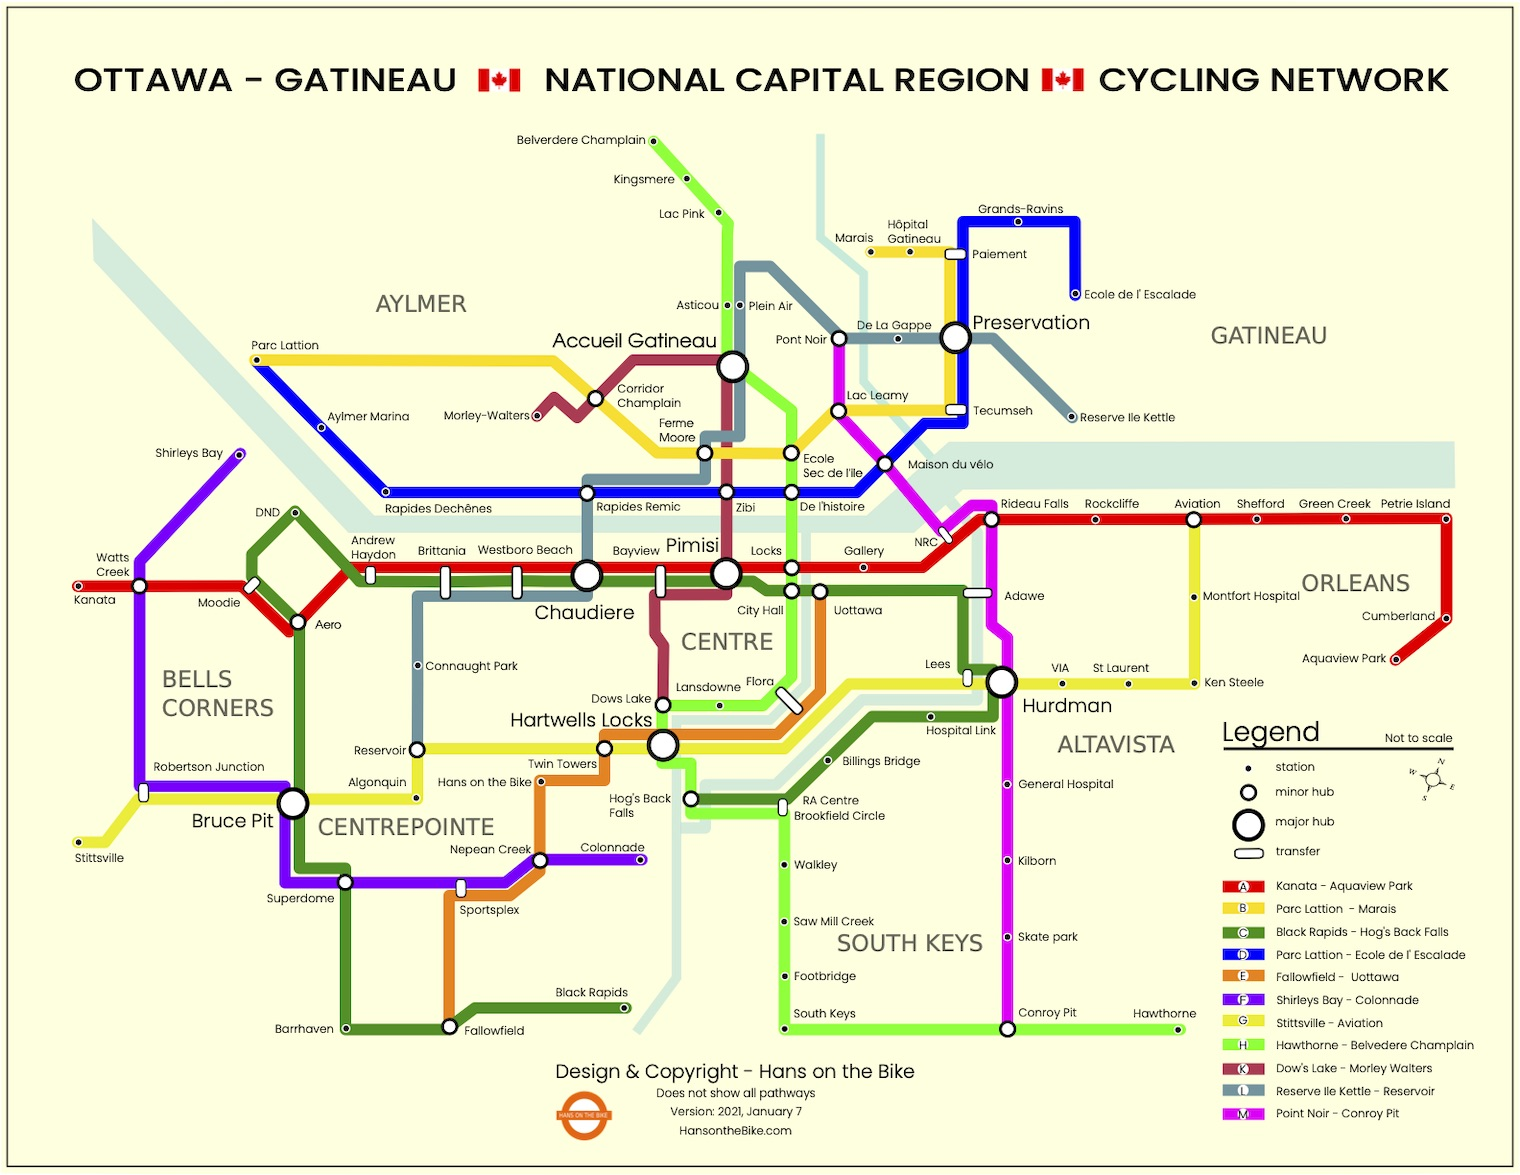 A Network Map of Ottawa's Cycling Network